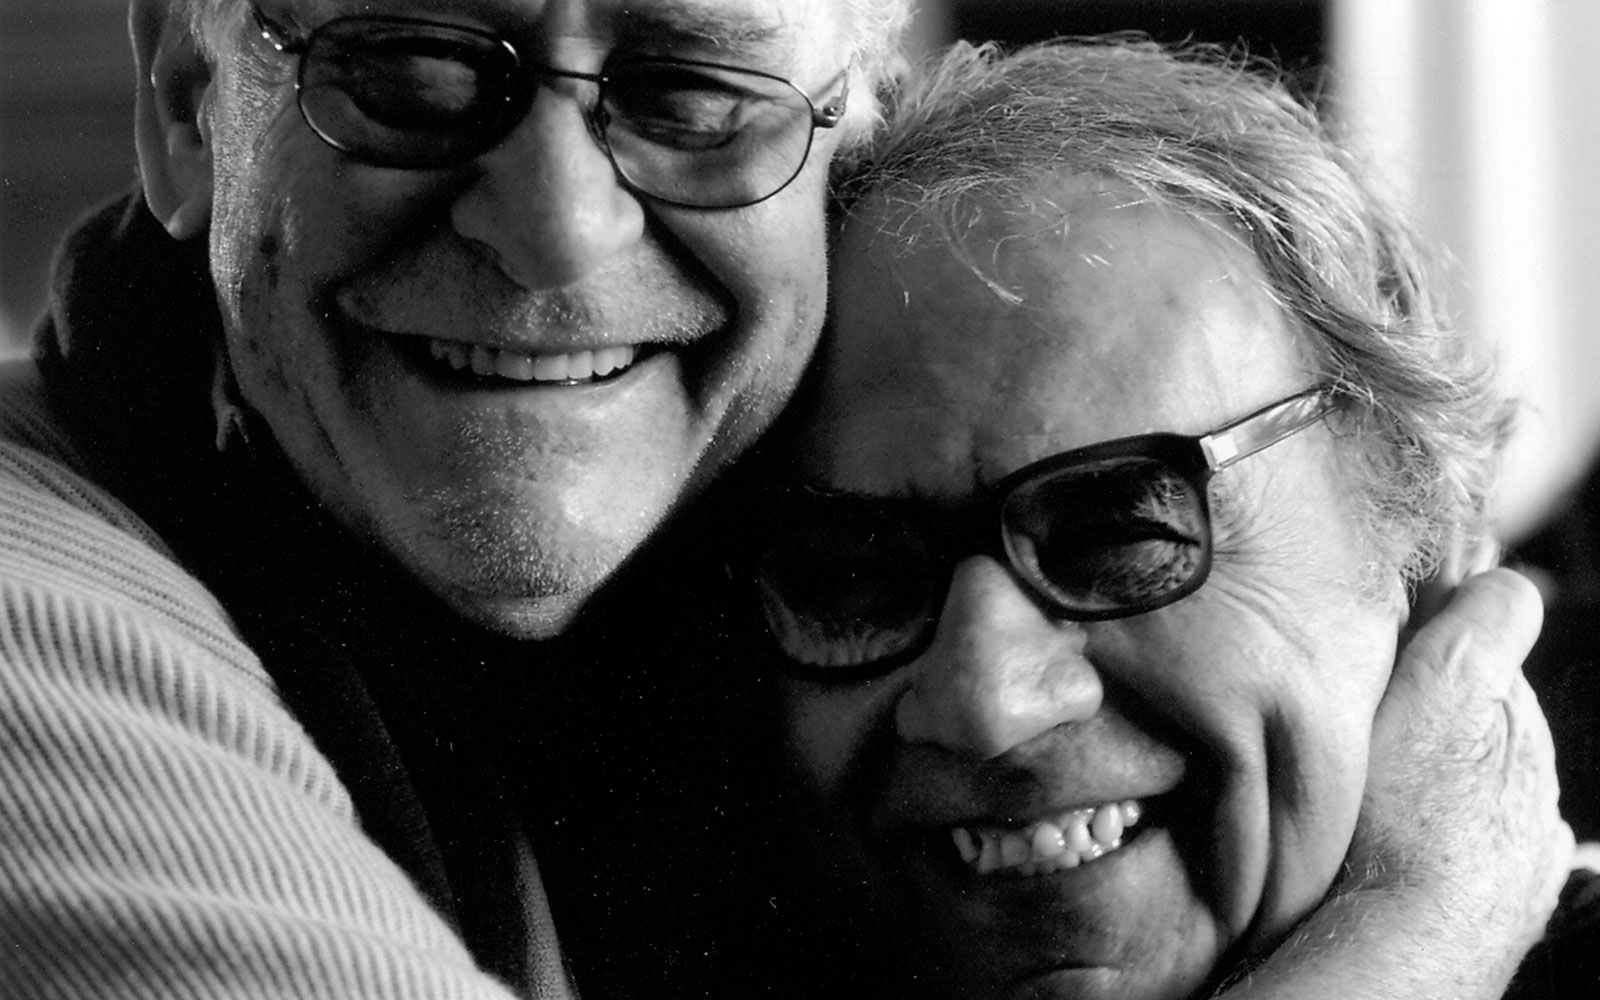 Giuseppe with film director Olmi Rivadossi Habito